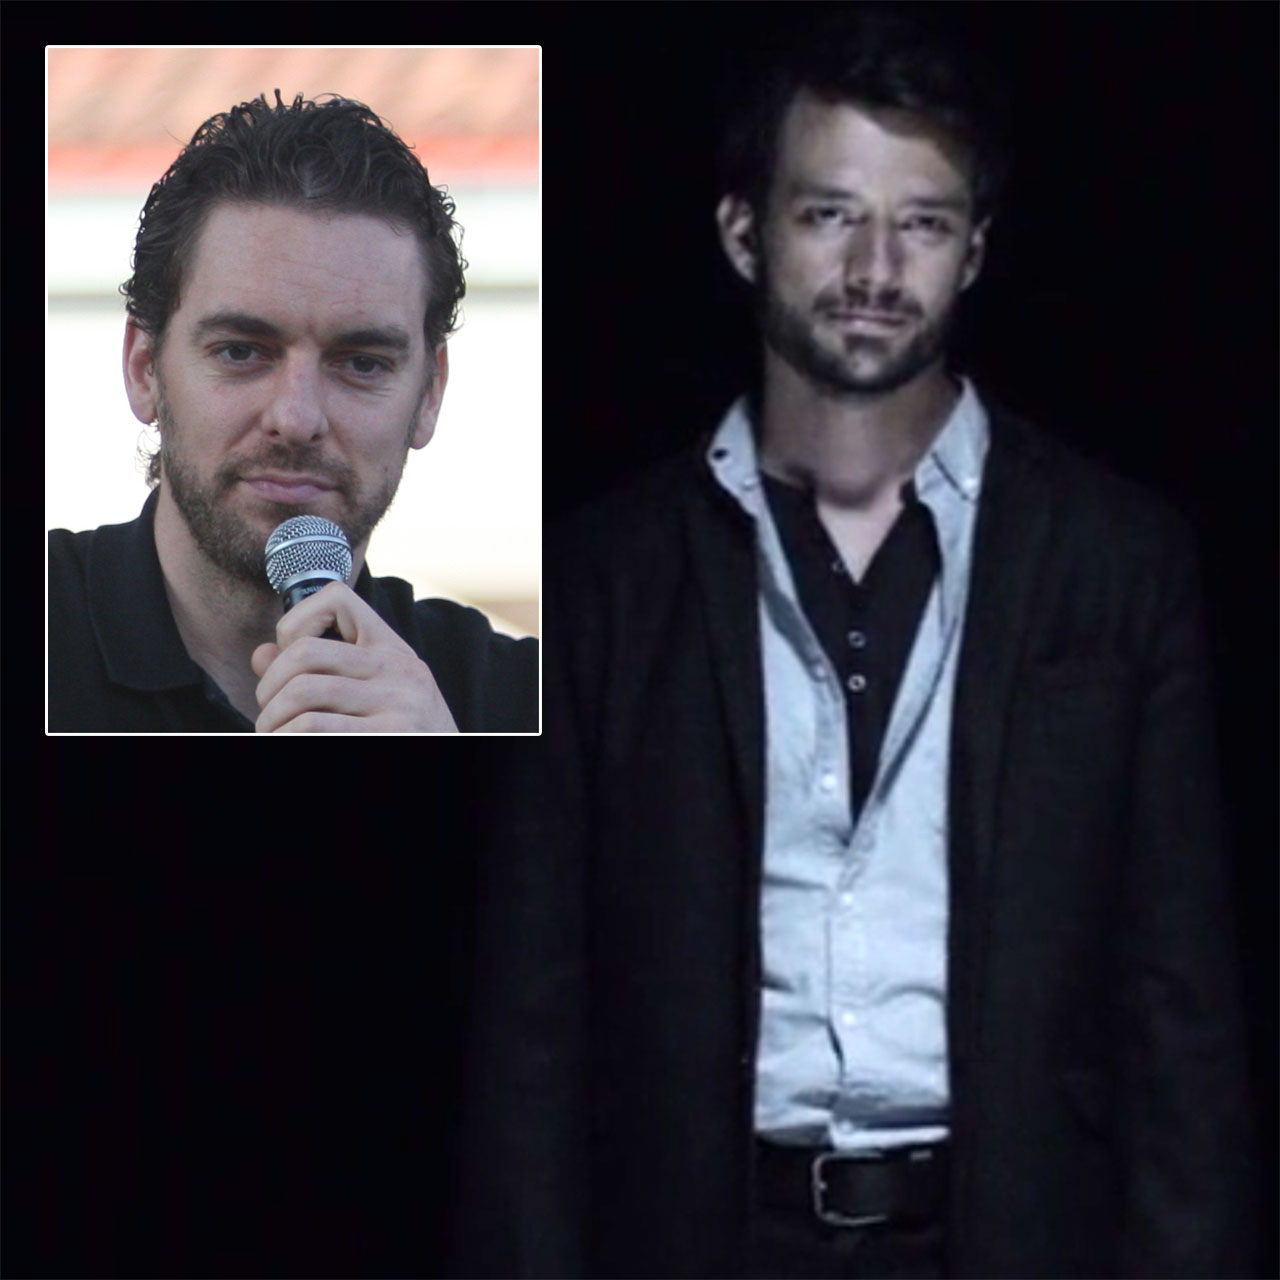 Separated at birth: Pau Gasol and Ben Winspear